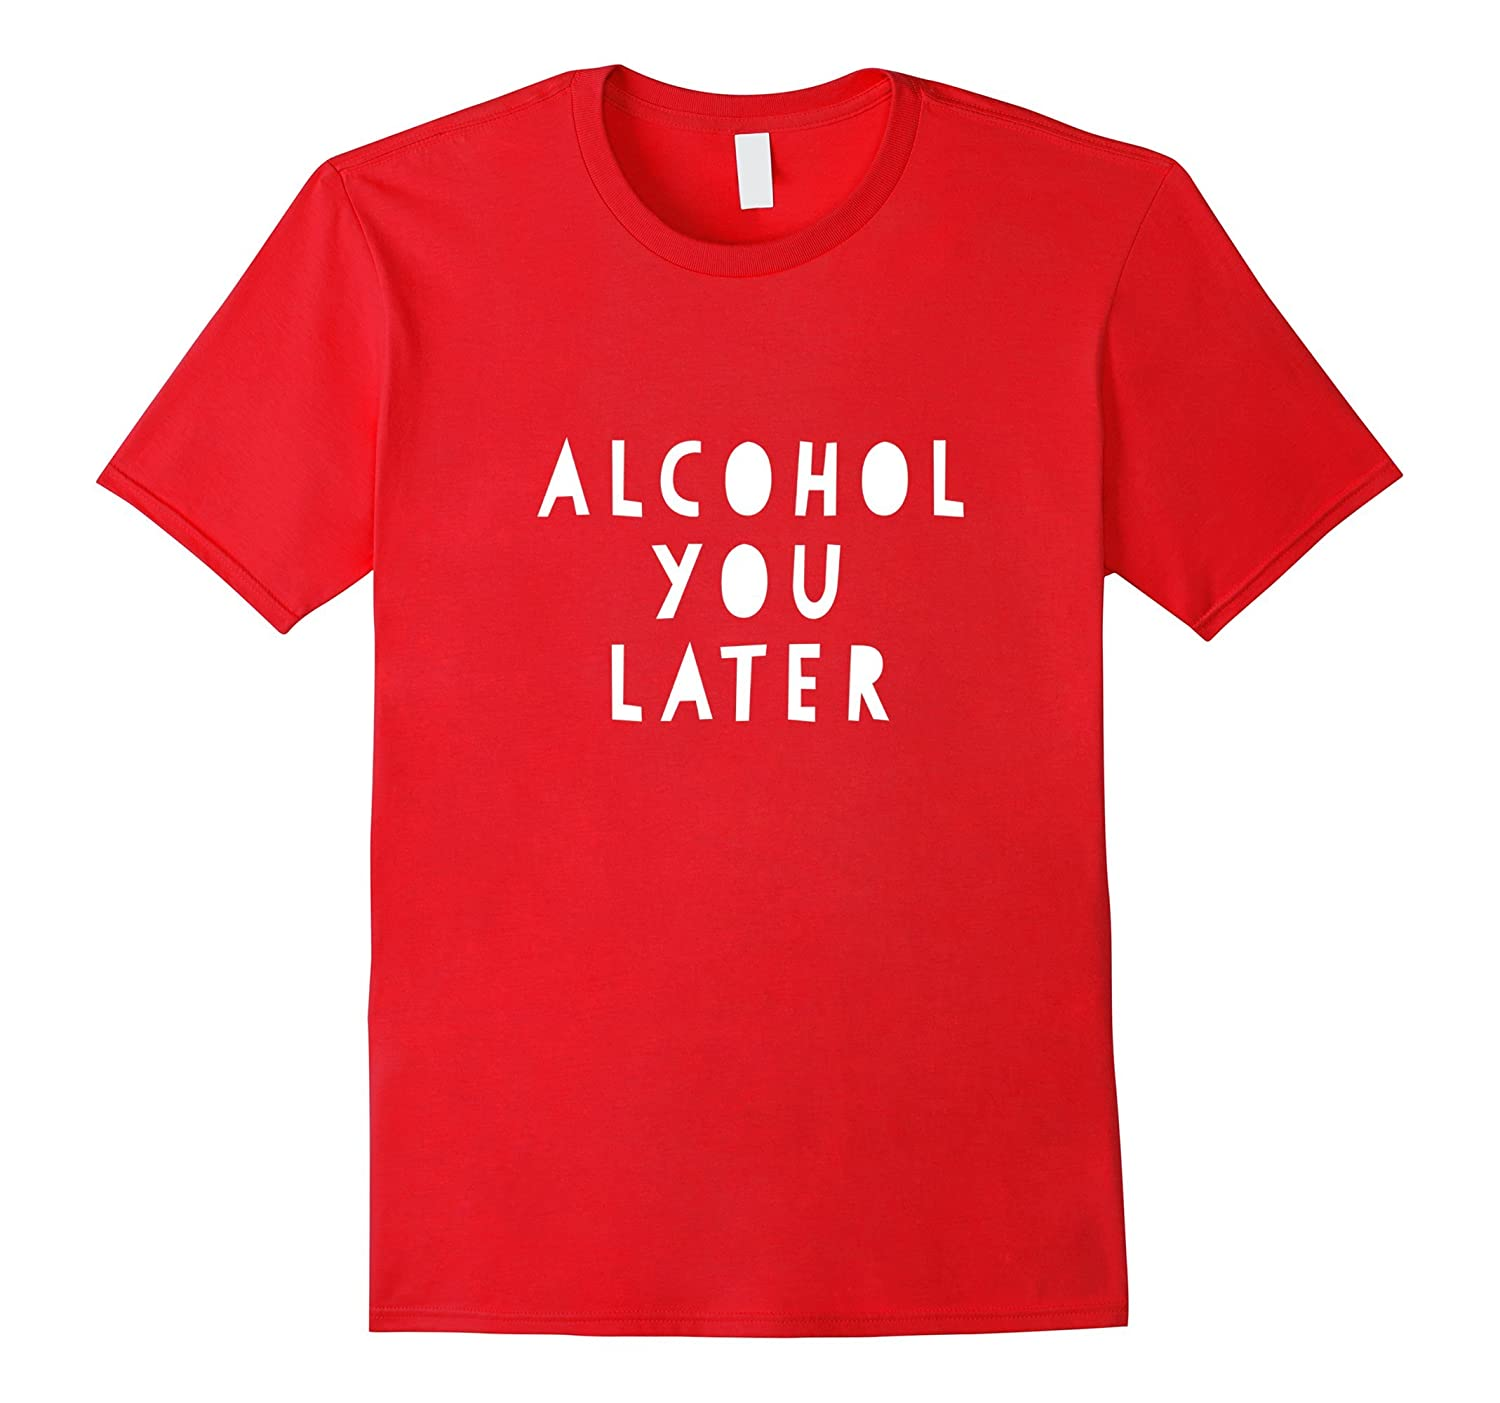 Alcohol You Later Funny Bar Drinking Motivational Cute Shirt-PL